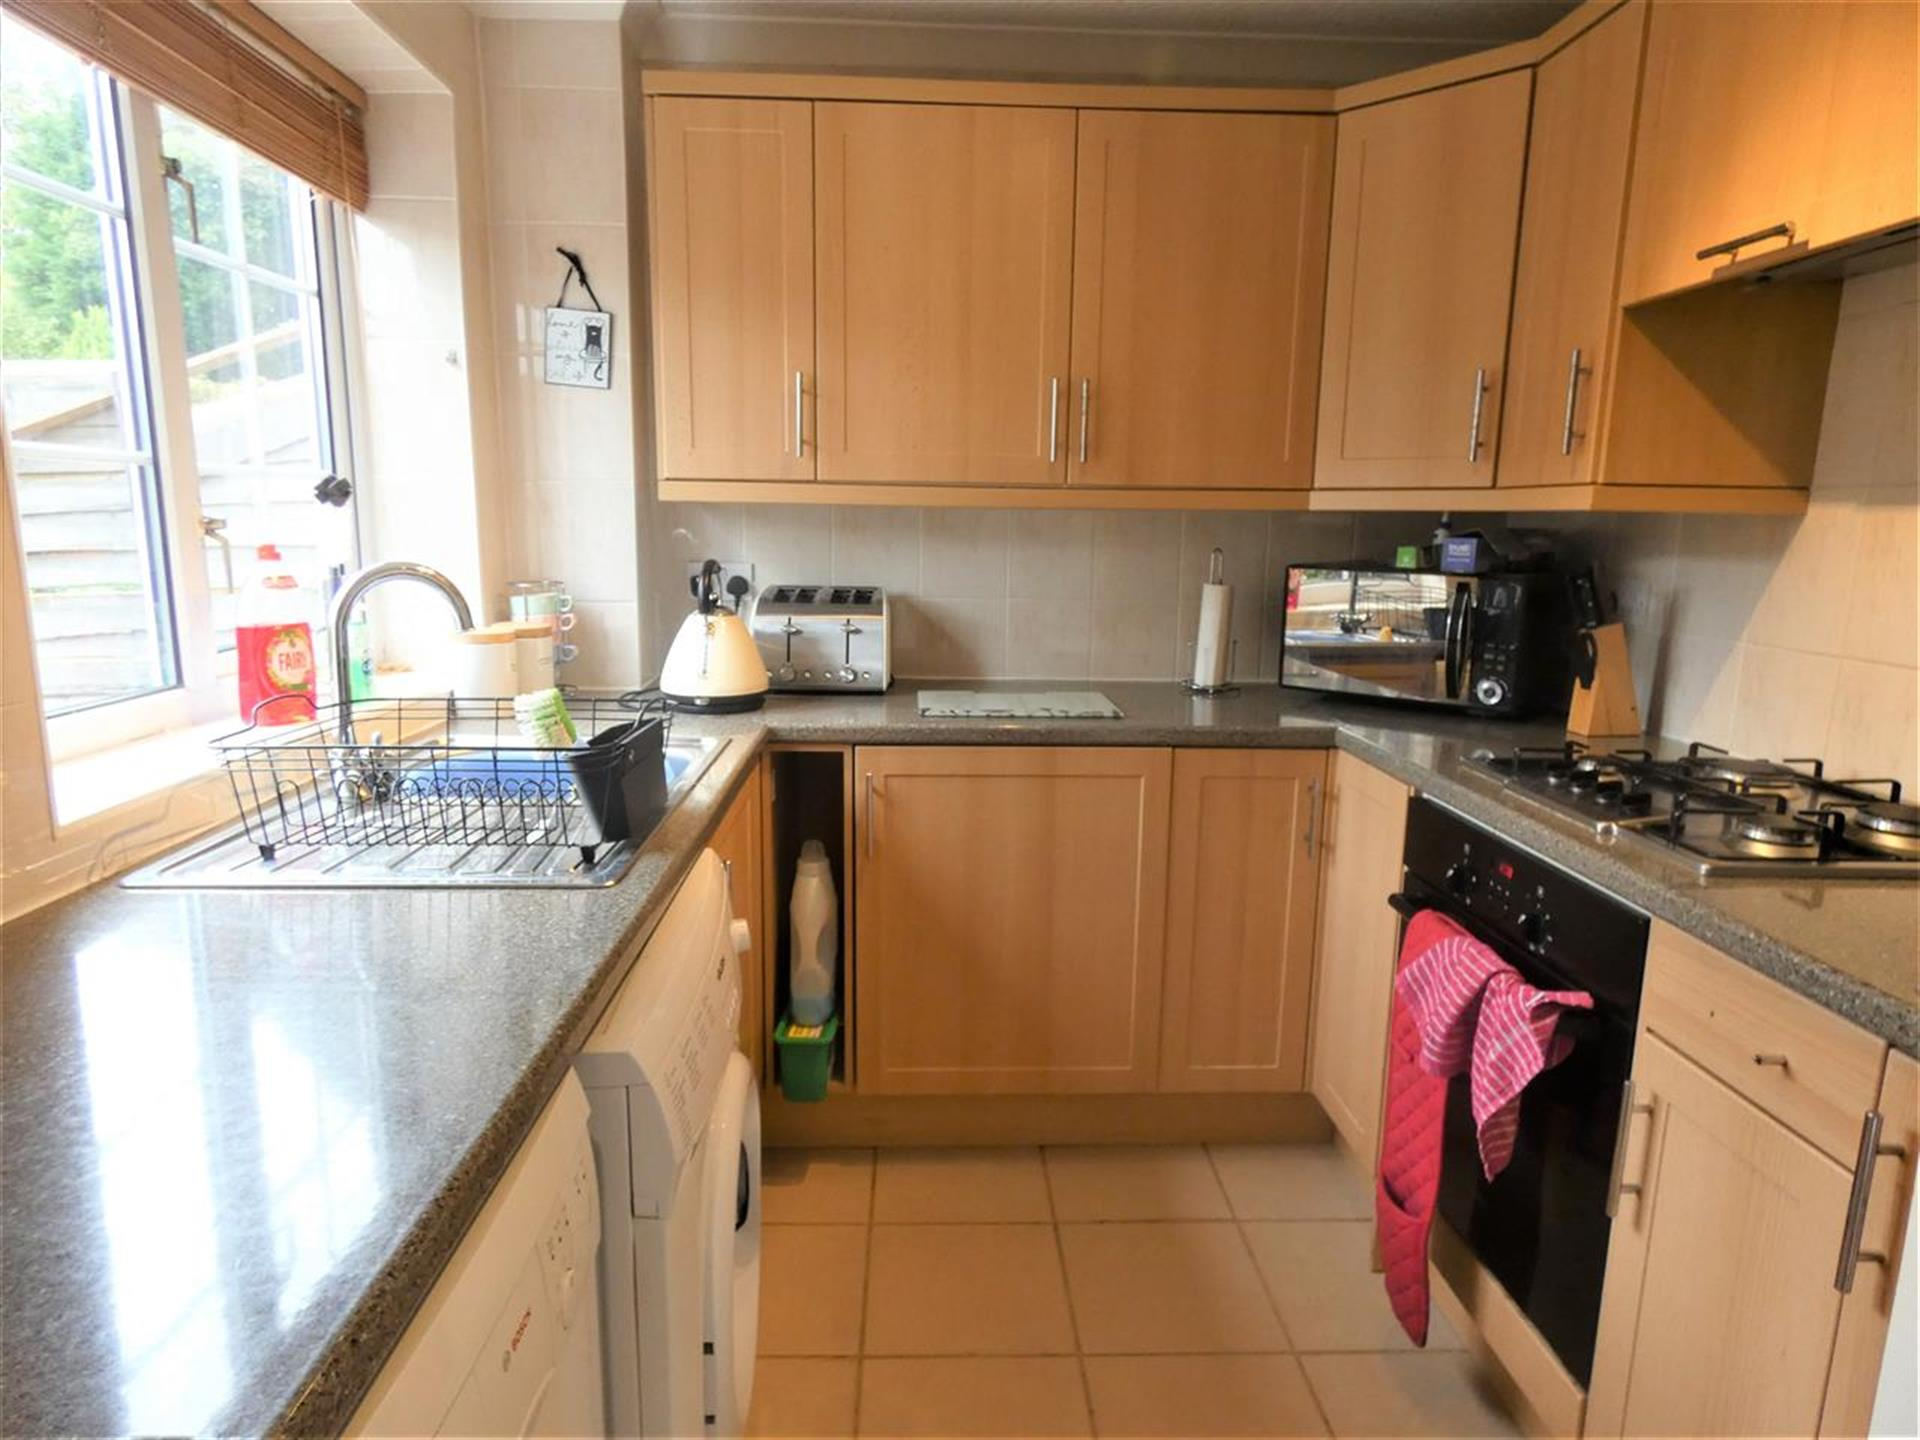 3 Bedroom Semi-detached House For Sale - Kitchen